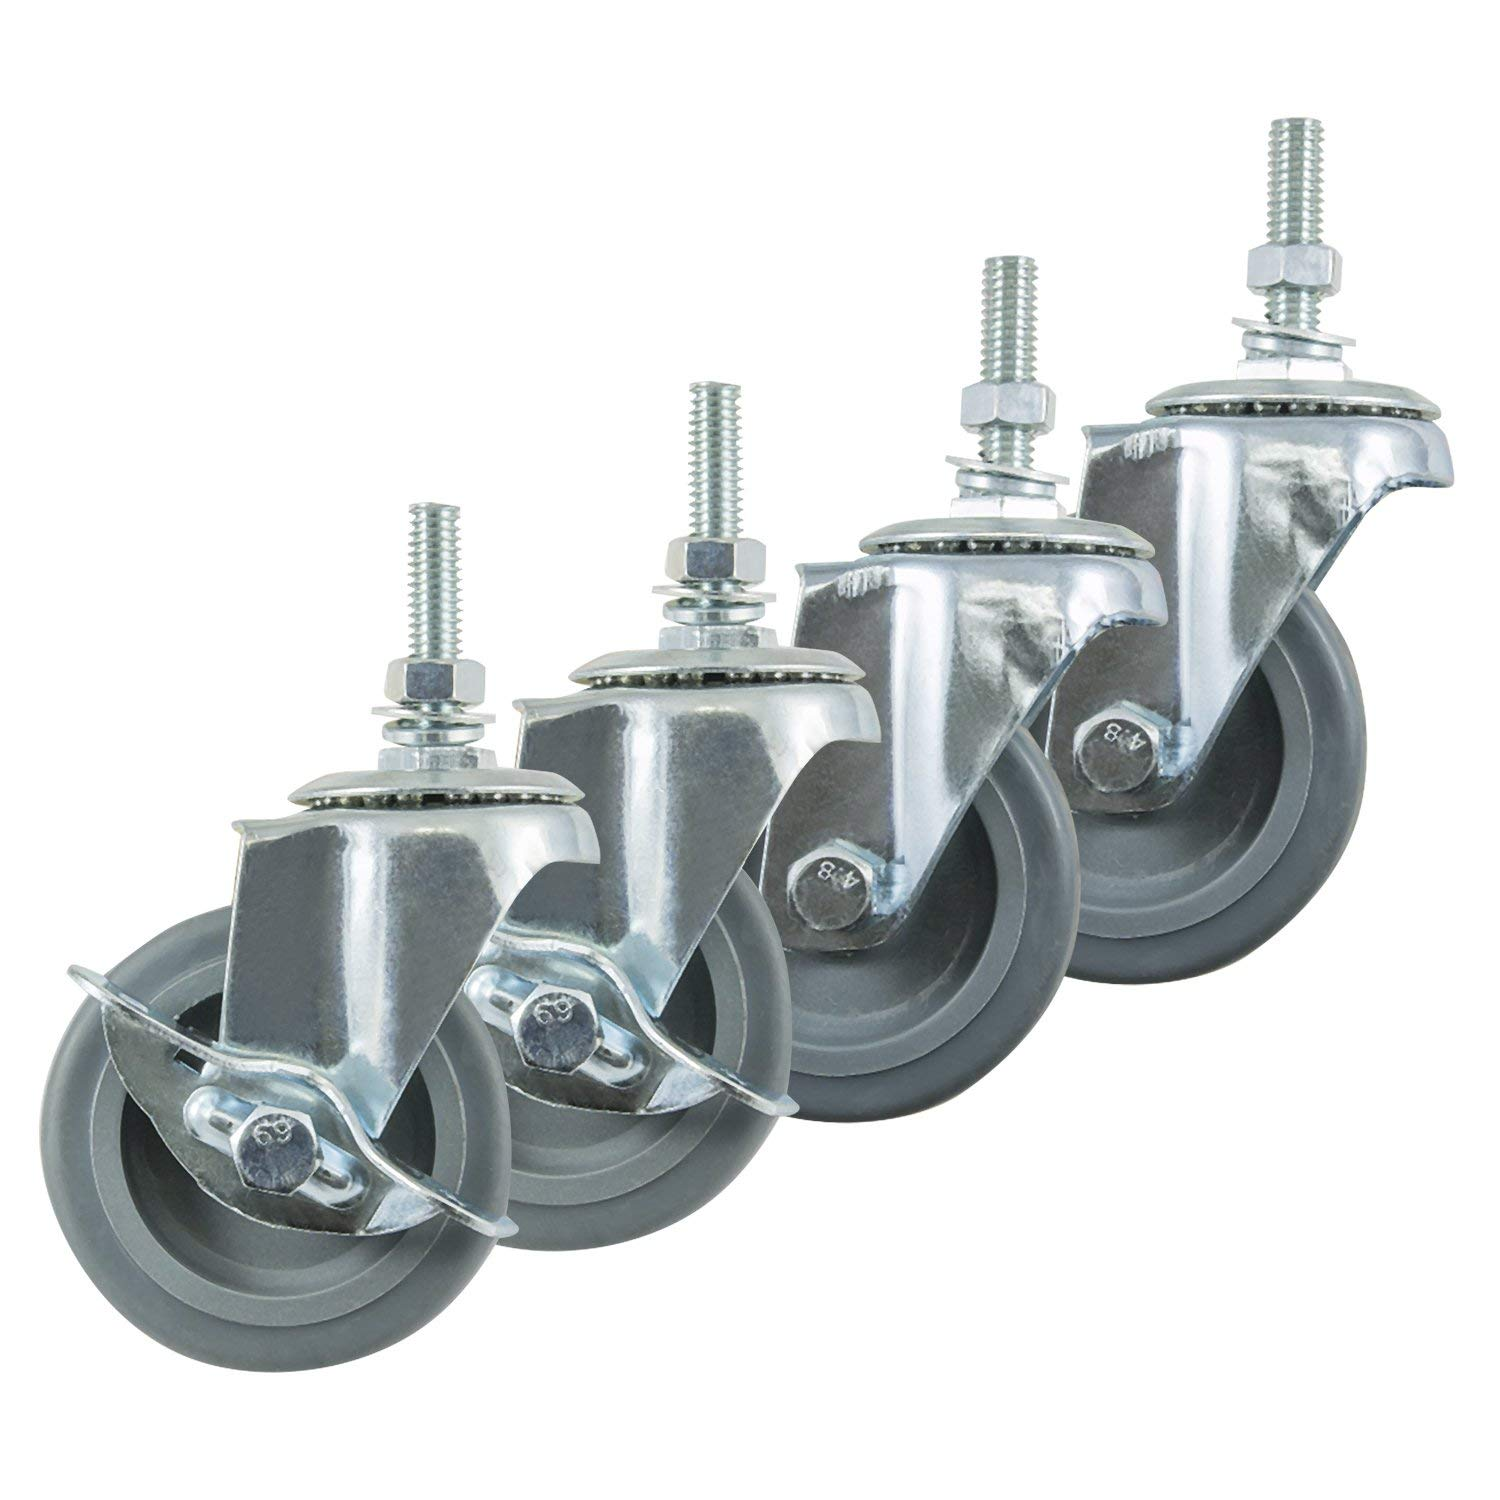 4 Inch Black IP Casters - Set of 4